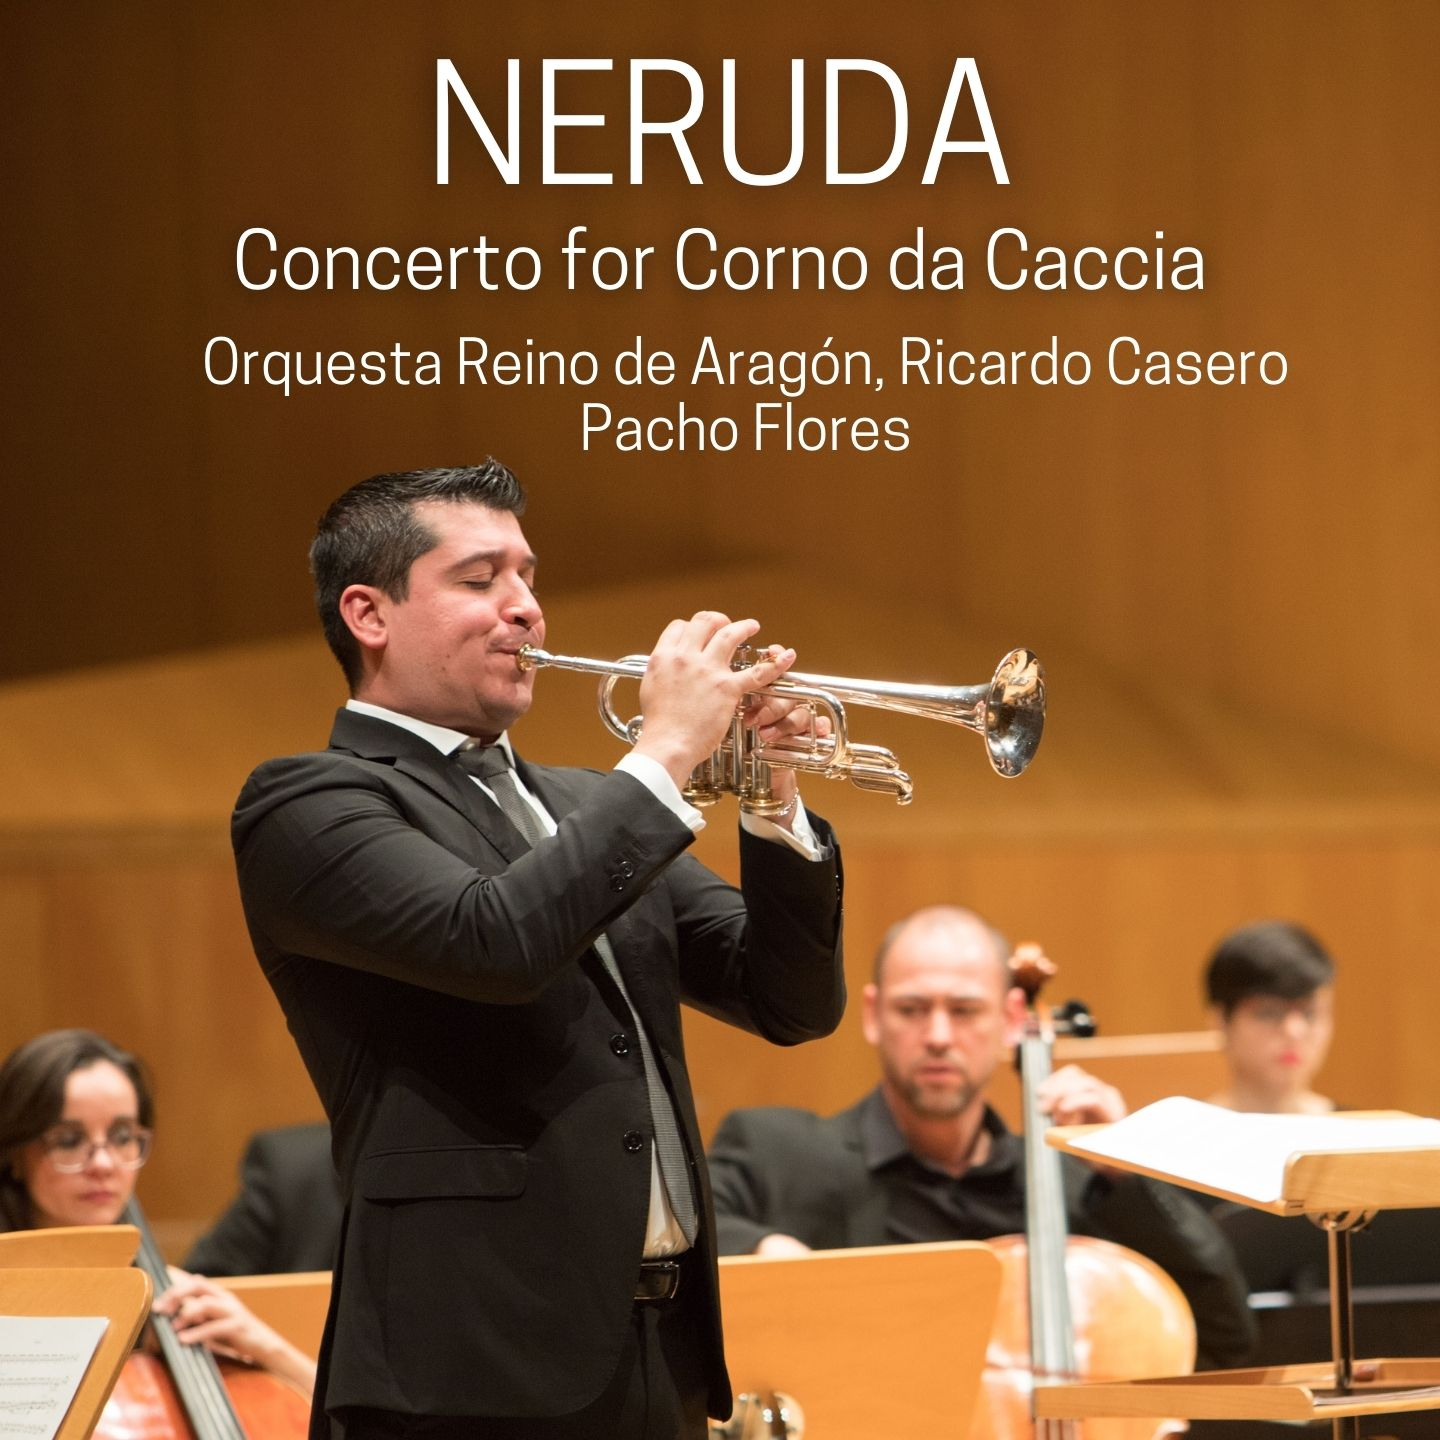 Neruda: Concerto for Corno da Caccia in E-Flat Major